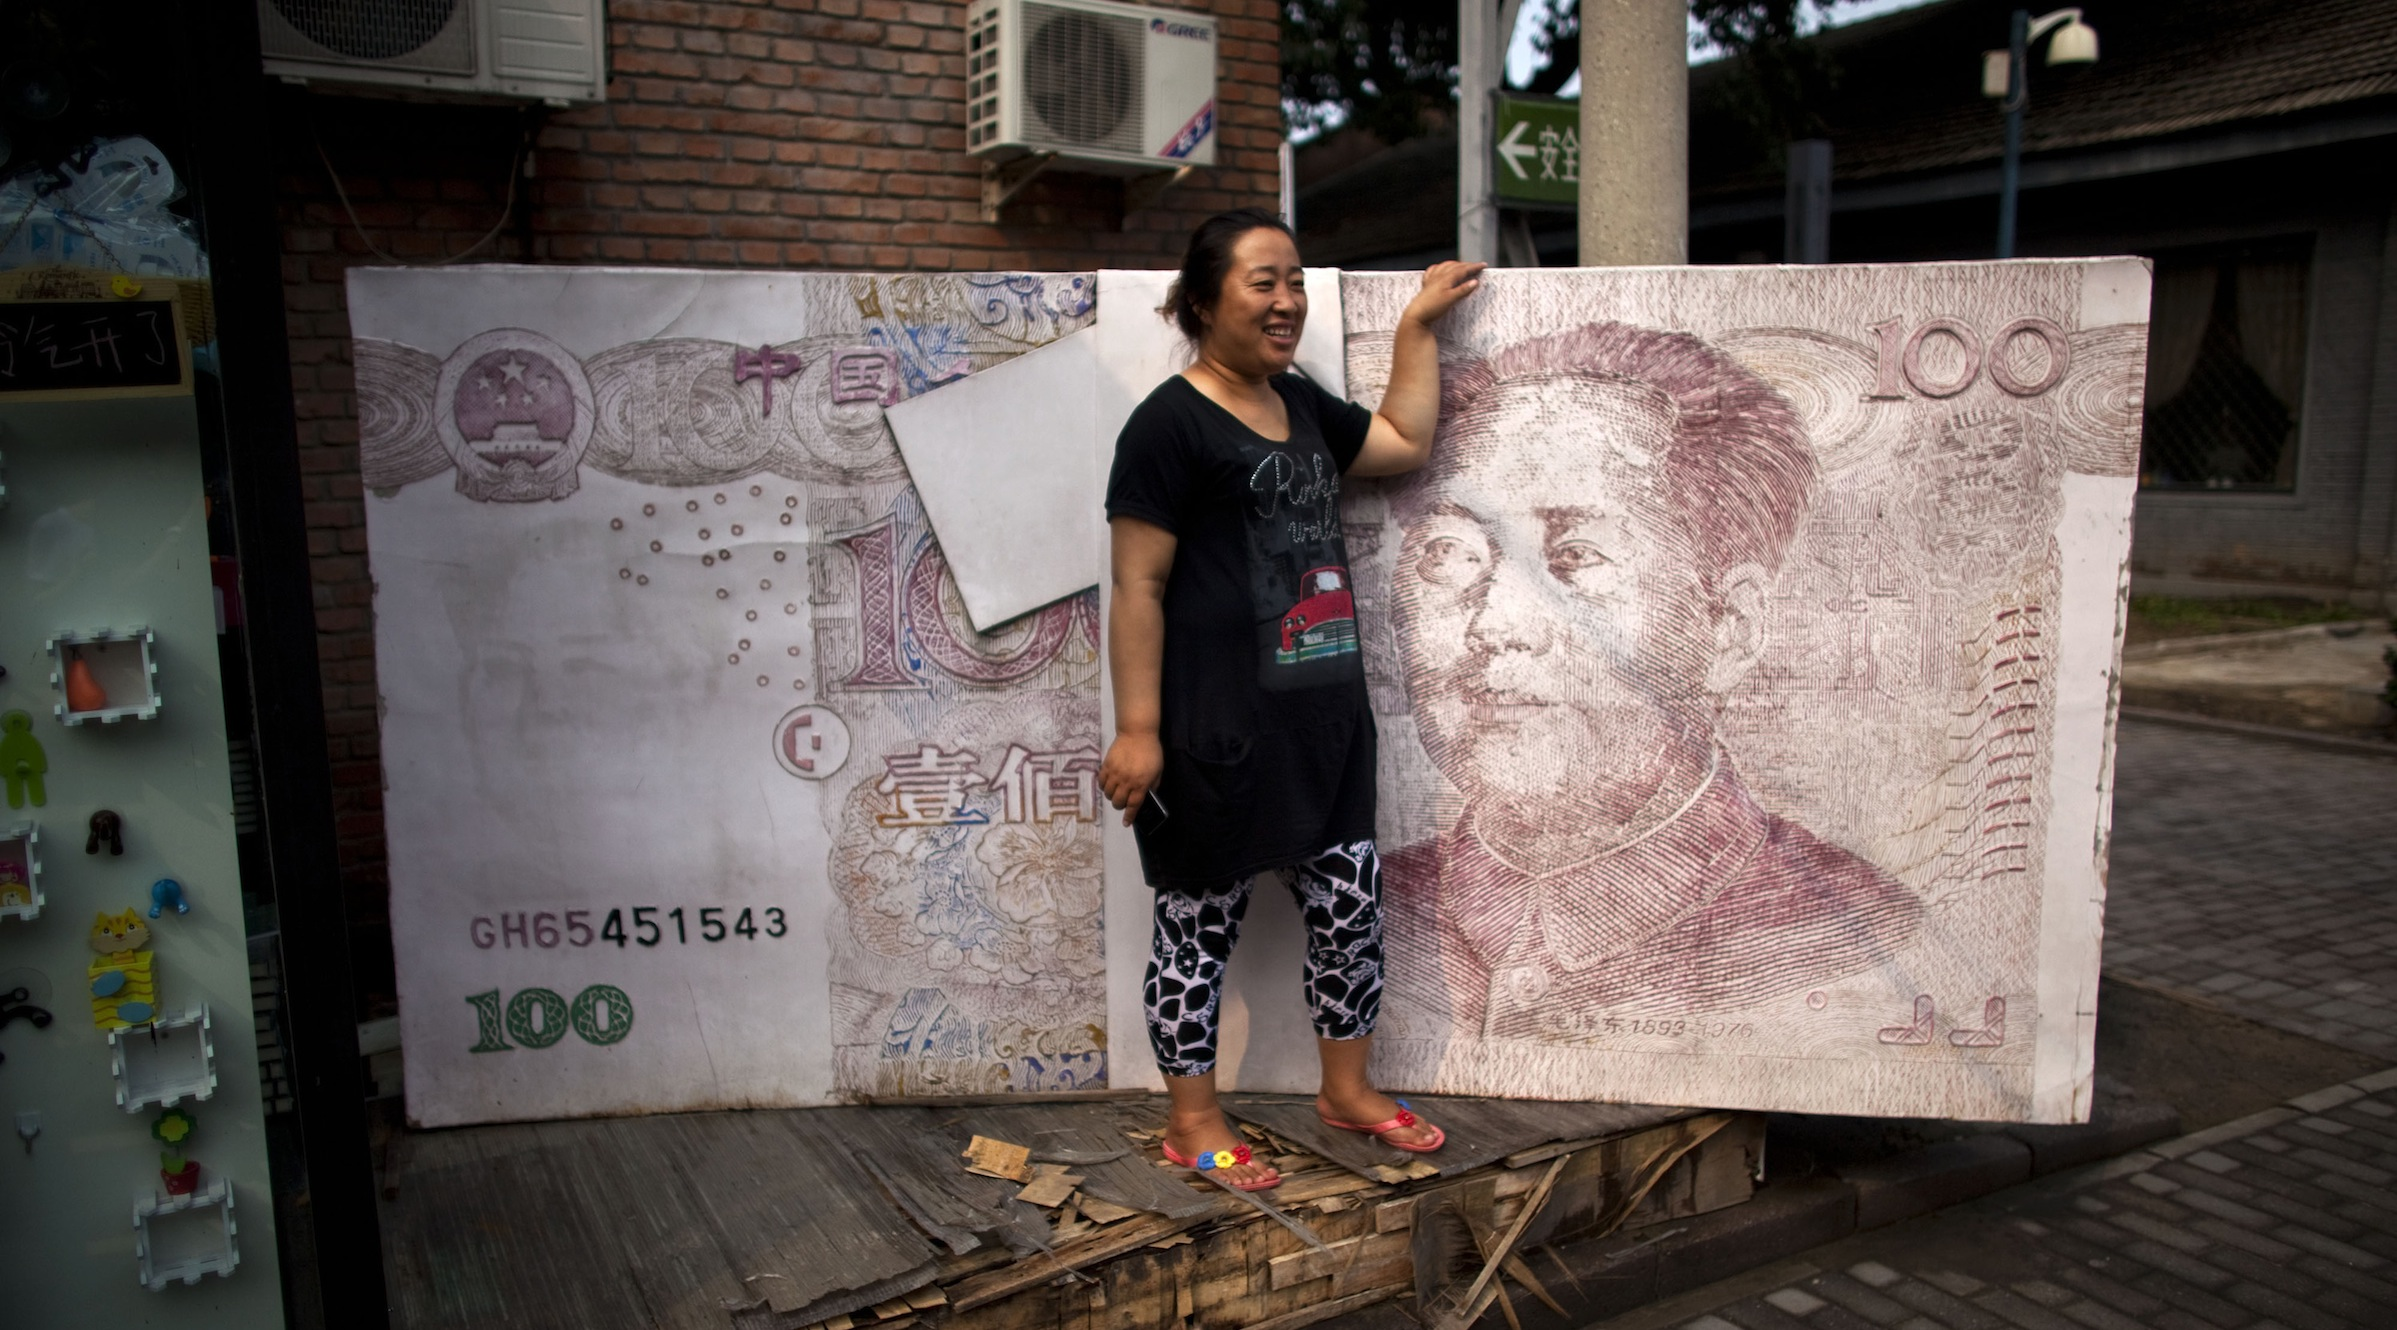 In this Aug. 26, 2011photo, a woman poses for photos with an art installation showing a stack of renminbi banknotes in Beijing, China. Regulators reportedly are expanding controls over China's banks to keep pace with a fast-changing industry and curb a credit boom as Beijing fights surging inflation. (AP Photo/Alexander F. Yuan)